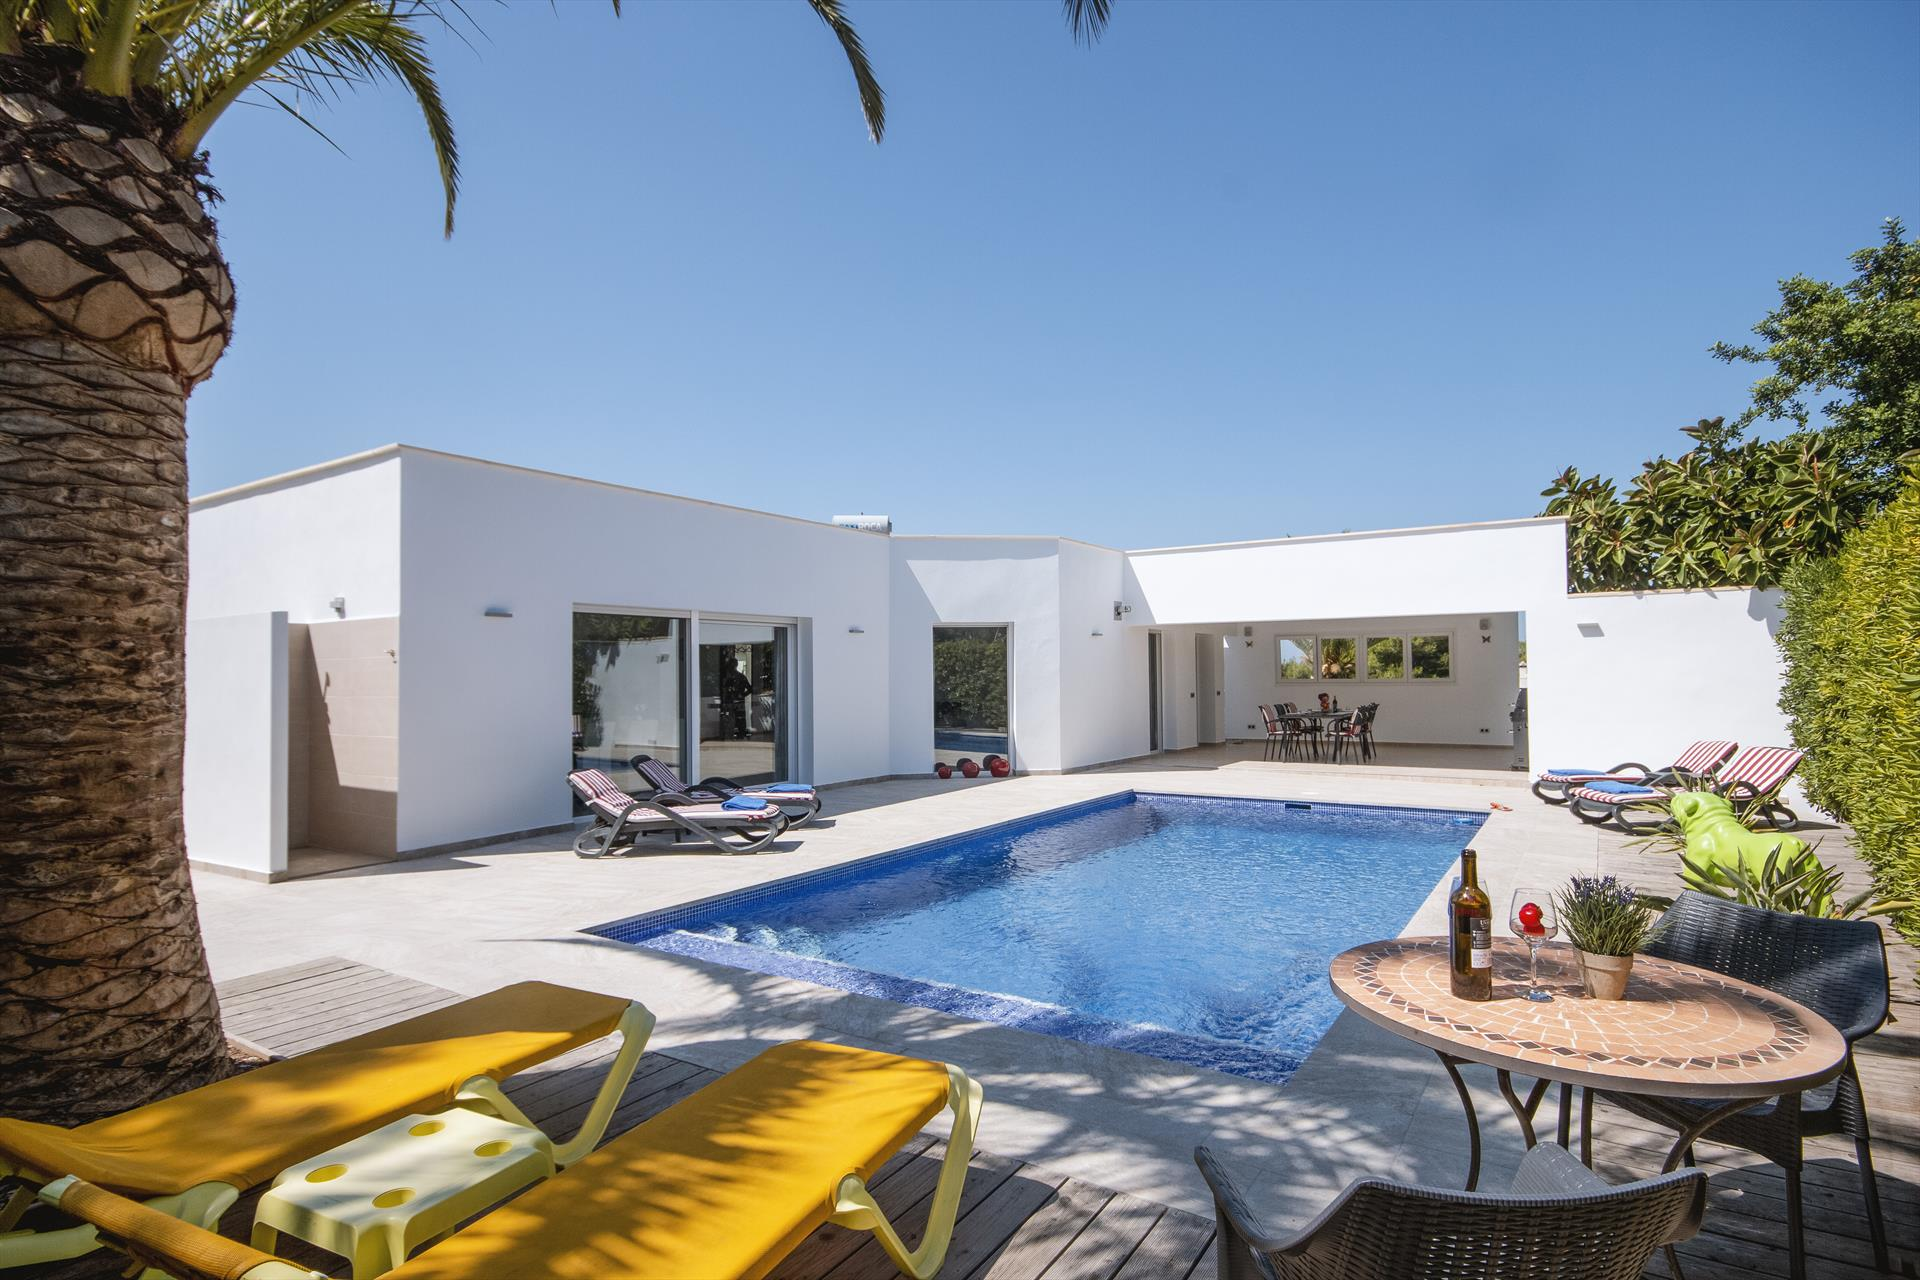 Mercedes, Beautiful and cheerful villa in Javea, on the Costa Blanca, Spain  with private pool for 4 persons.....